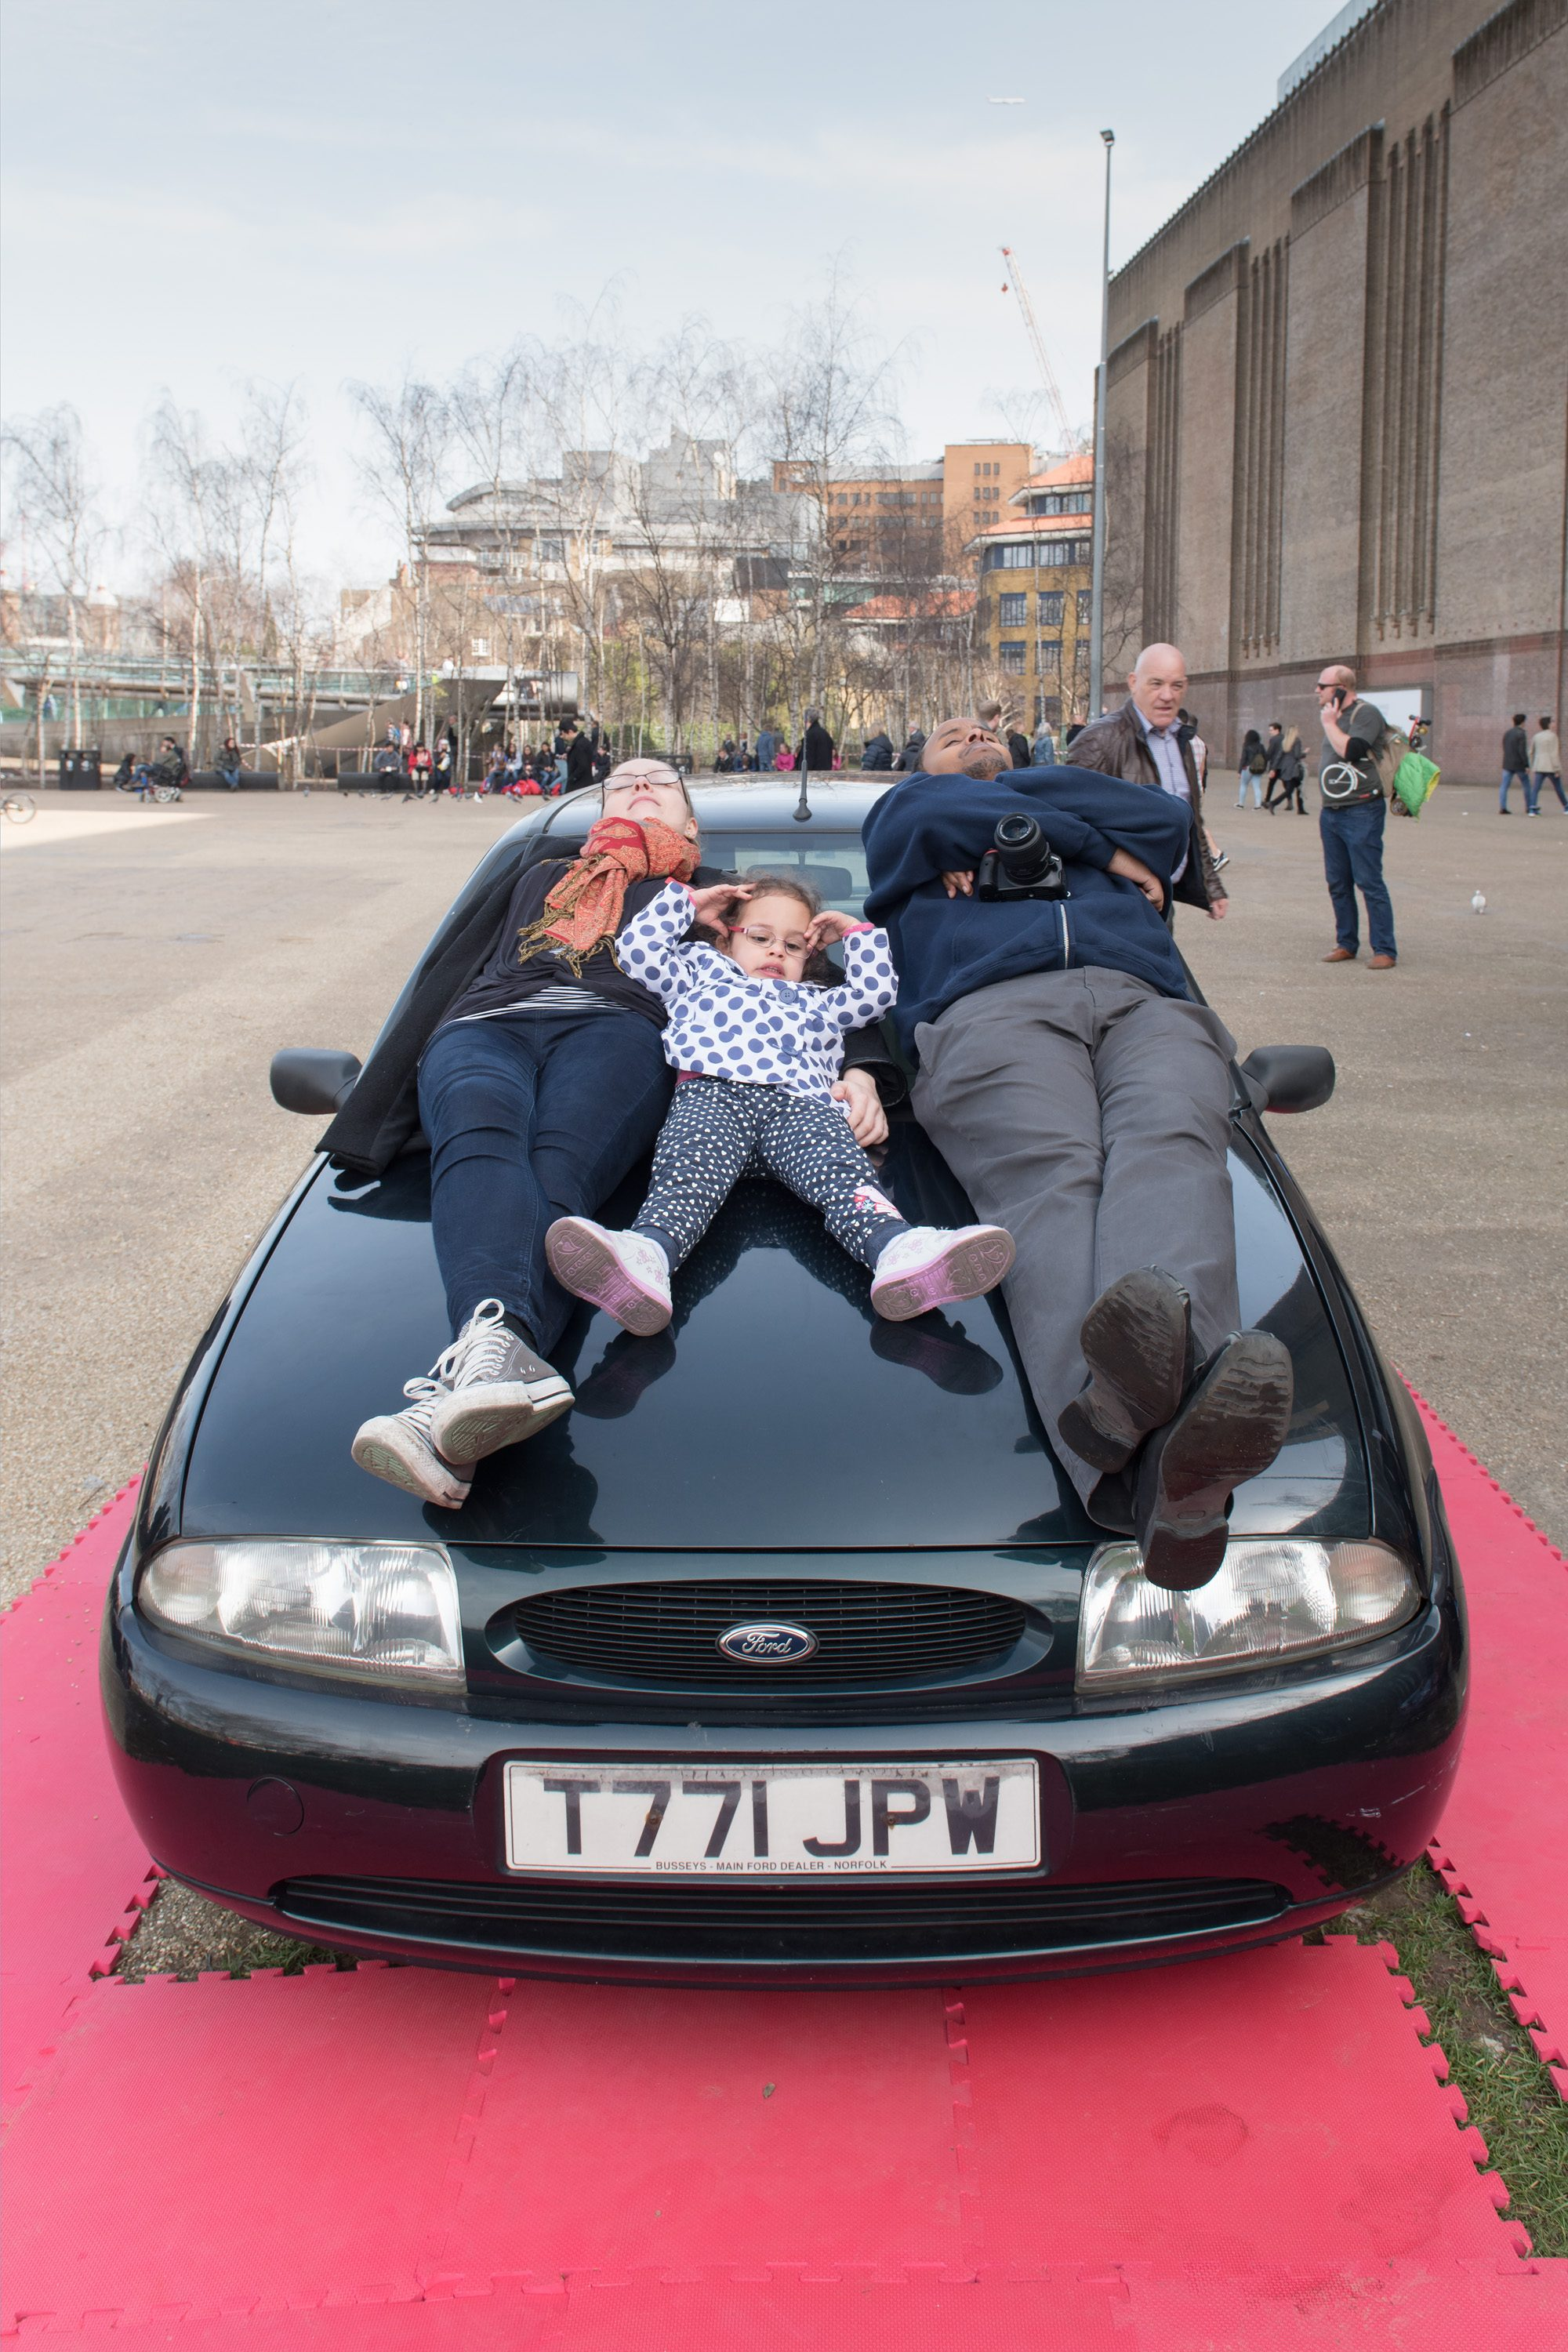 a child and two adults lie on top of a car outside the Tate Modern.